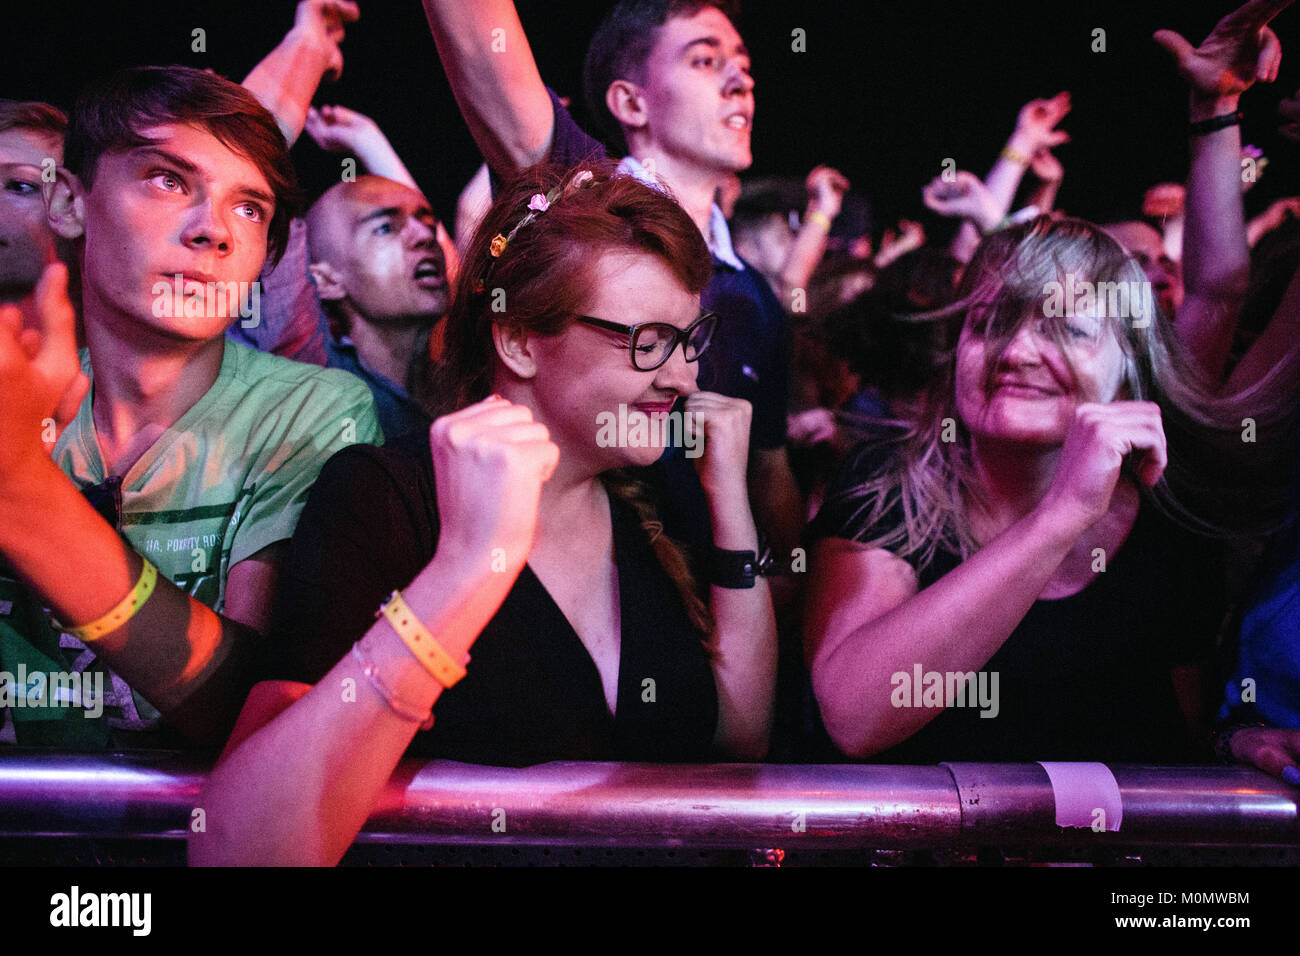 Energetic festival goers and music fans go crazy at a live concert